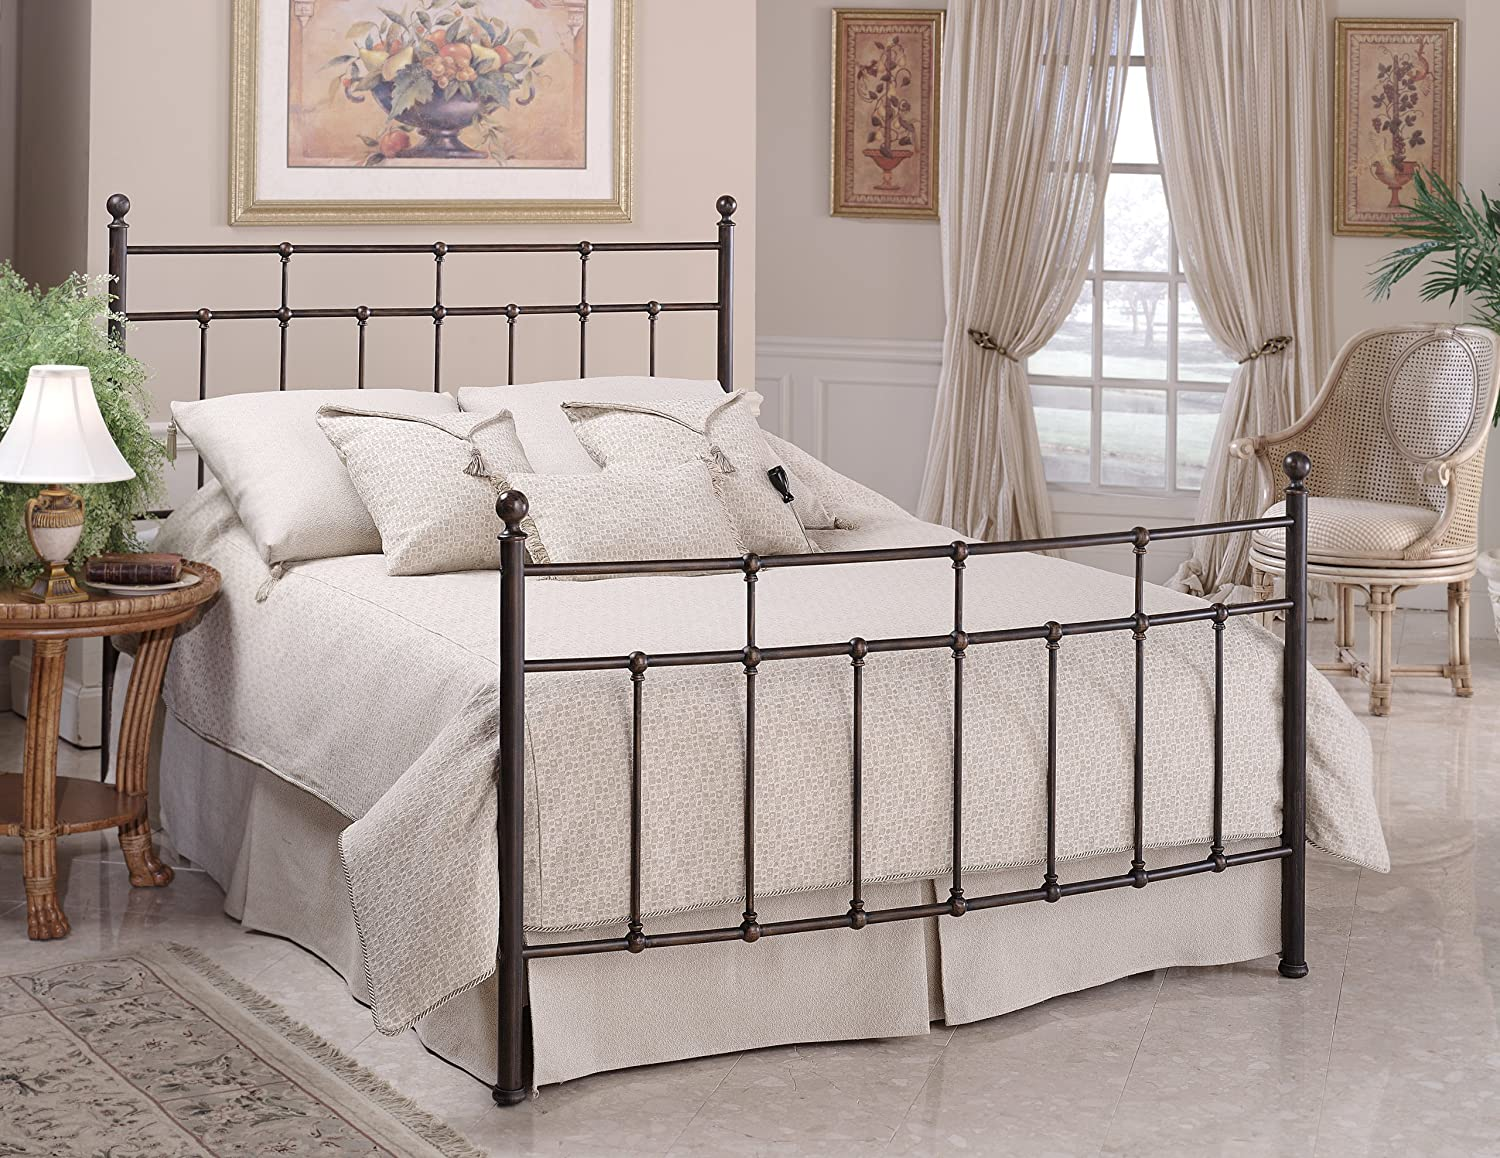 Amazon.com: Hillsdale Furniture 380BTWR Providence Bed Set with ...